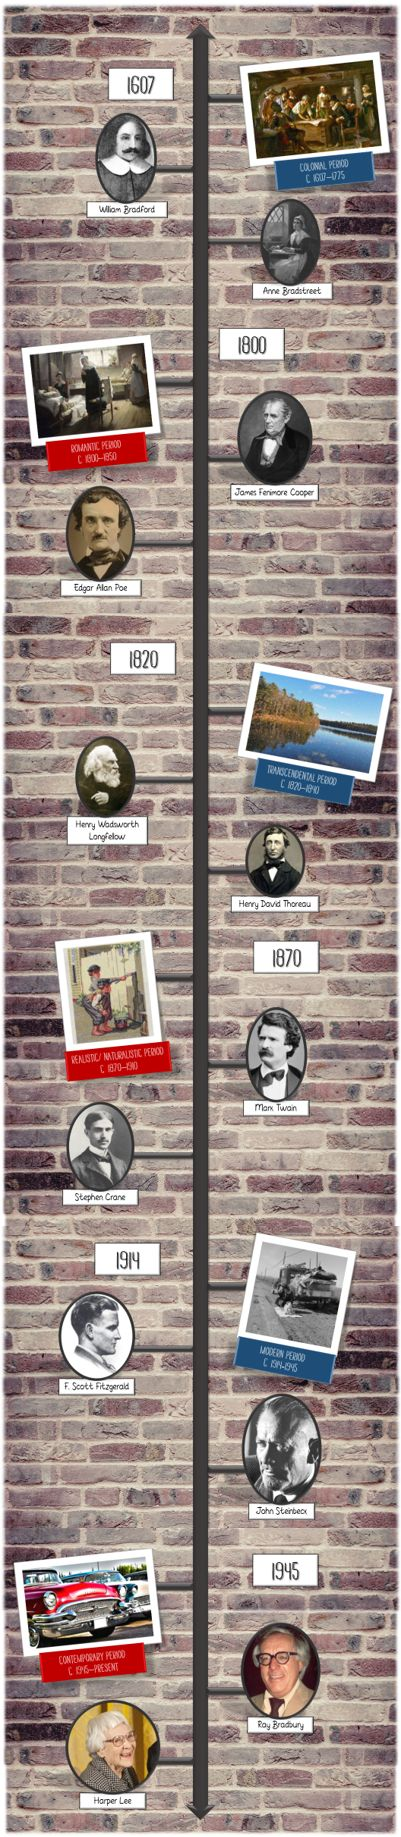 A great addition to your ELA or American history classroom decor! This American literature timeline is over 4 feet tall, and features 6 major literary time periods. #ELA #Americanlit #literature #classroomdecor #bulletinboard #highschool #history #Americanhistory #authors #timeline